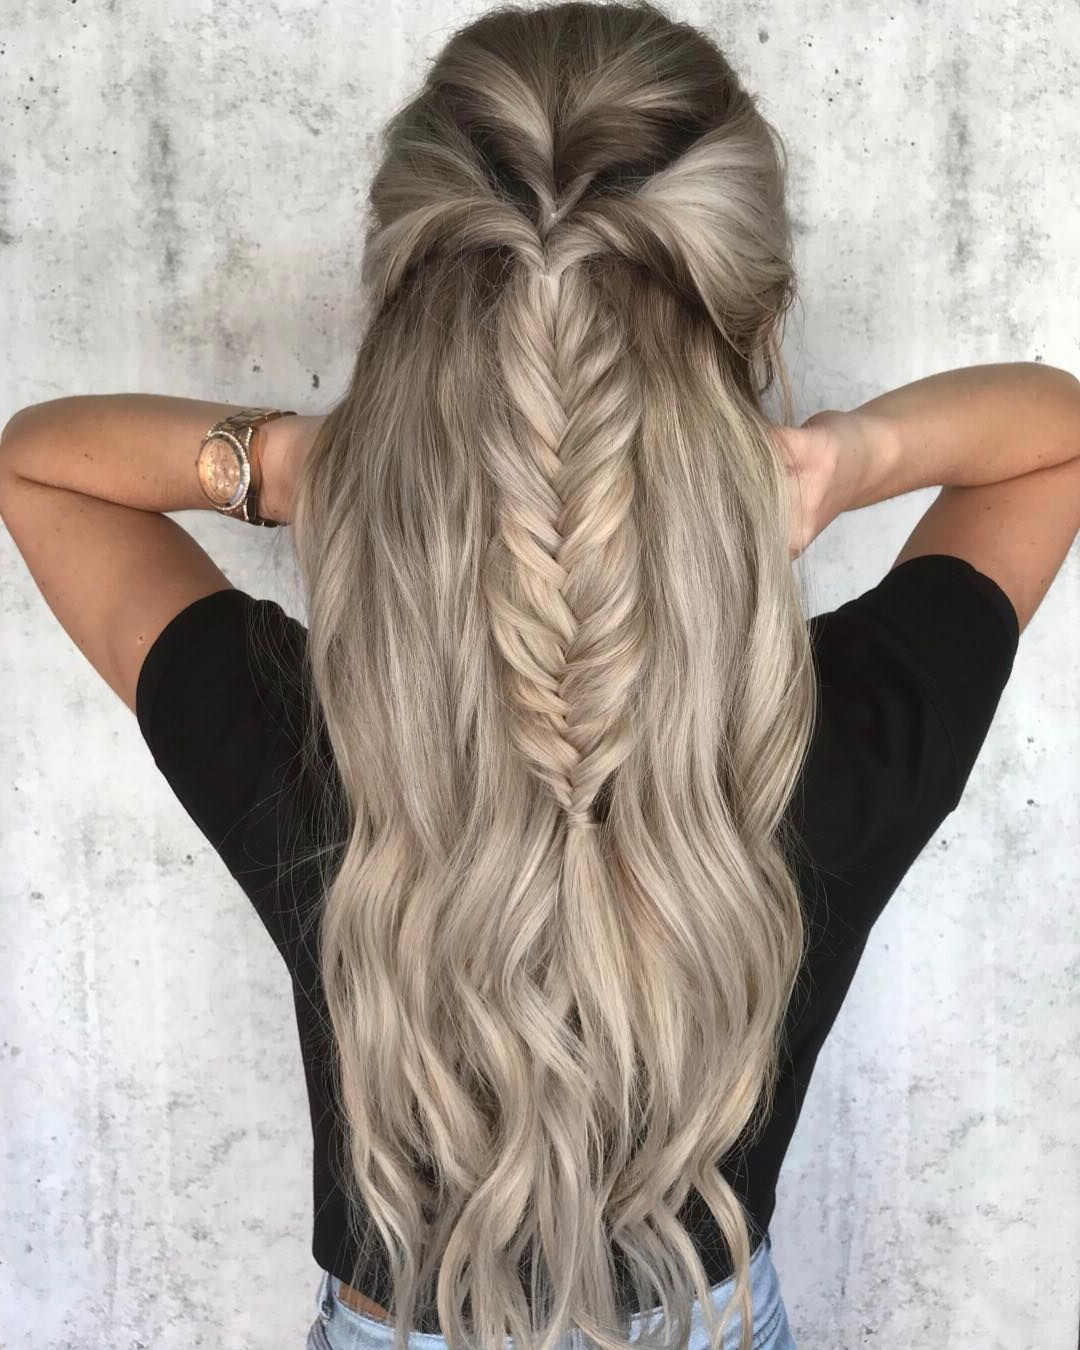 Fishtail Braided Half Throughout 2018 Braid Spikelet Prom Hairstyles (View 14 of 20)